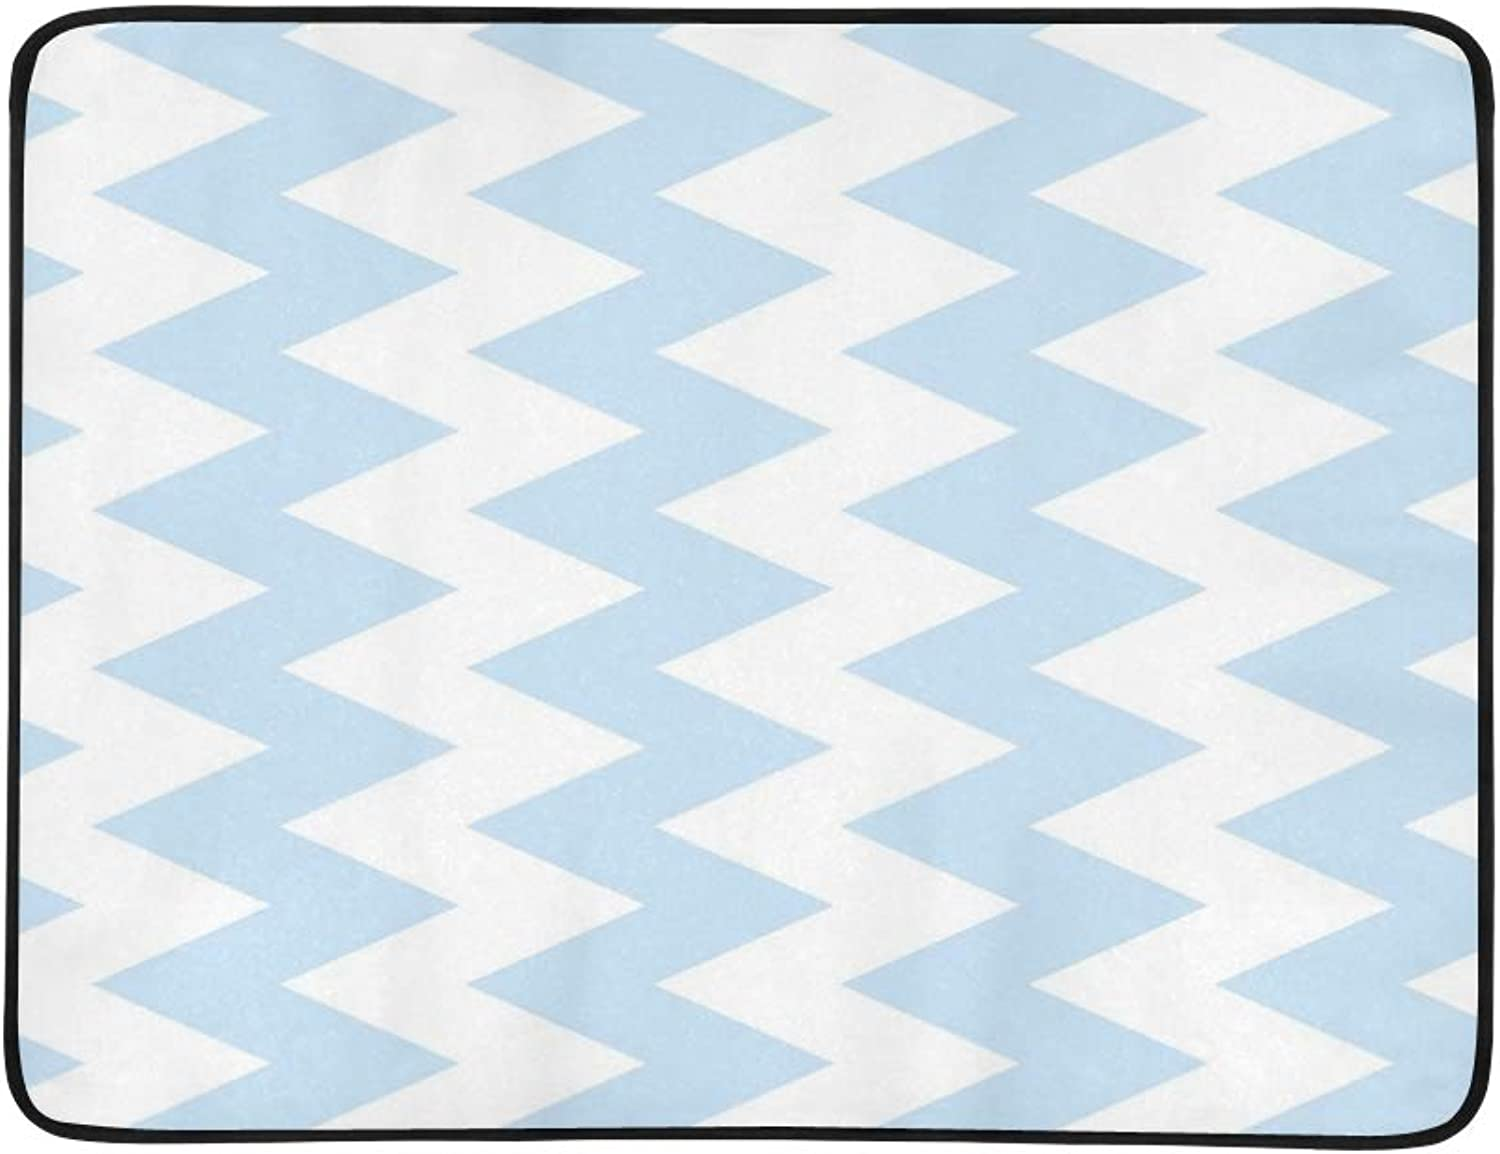 blueee Chevron Zigzag Portable and Foldable Blanket Mat 60x78 Inch Handy Mat for Camping Picnic Beach Indoor Outdoor Travel